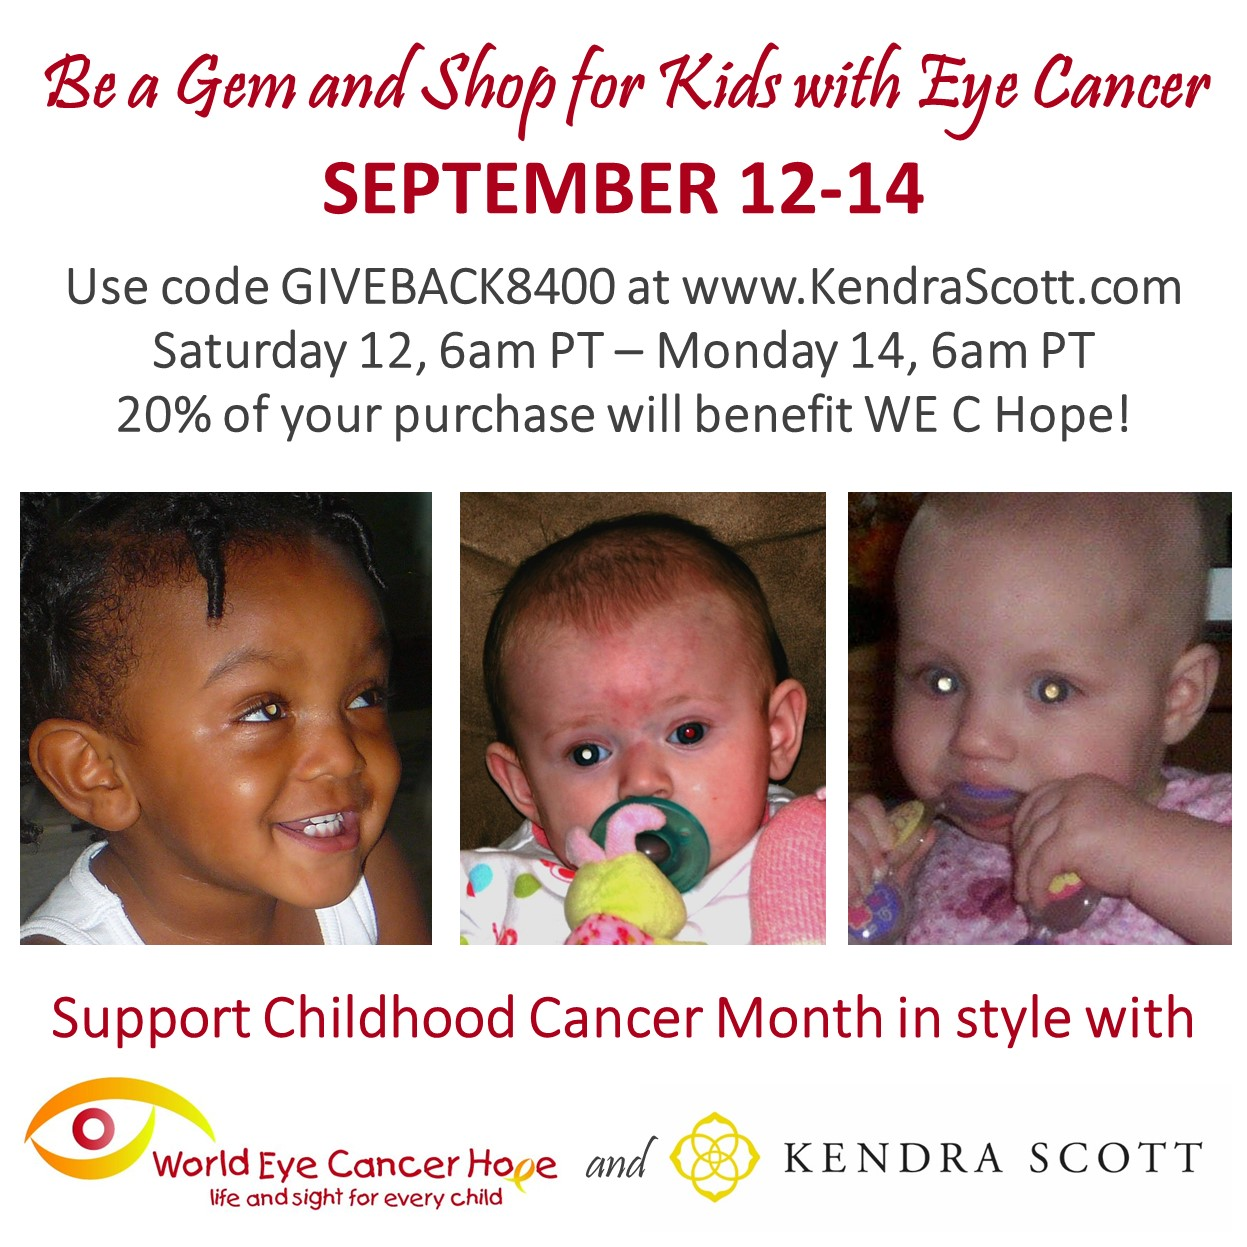 Image combines information about the fundraiser and retinoblastoma awareness. Title reads: Be a Gem and Shop for Kids with Eye Cancer September 12-14. Text reads: Use code GIVEBACK8400 at www.KendraScott.com 12 September, 6am PT – 14 September, 6am PT. Three panels across the middle of the image show photographs of children with various presentations of white reflex. Below, text reads: Support Childhood Cancer Month in style with… WE C Hope and Kendra Scott logos.